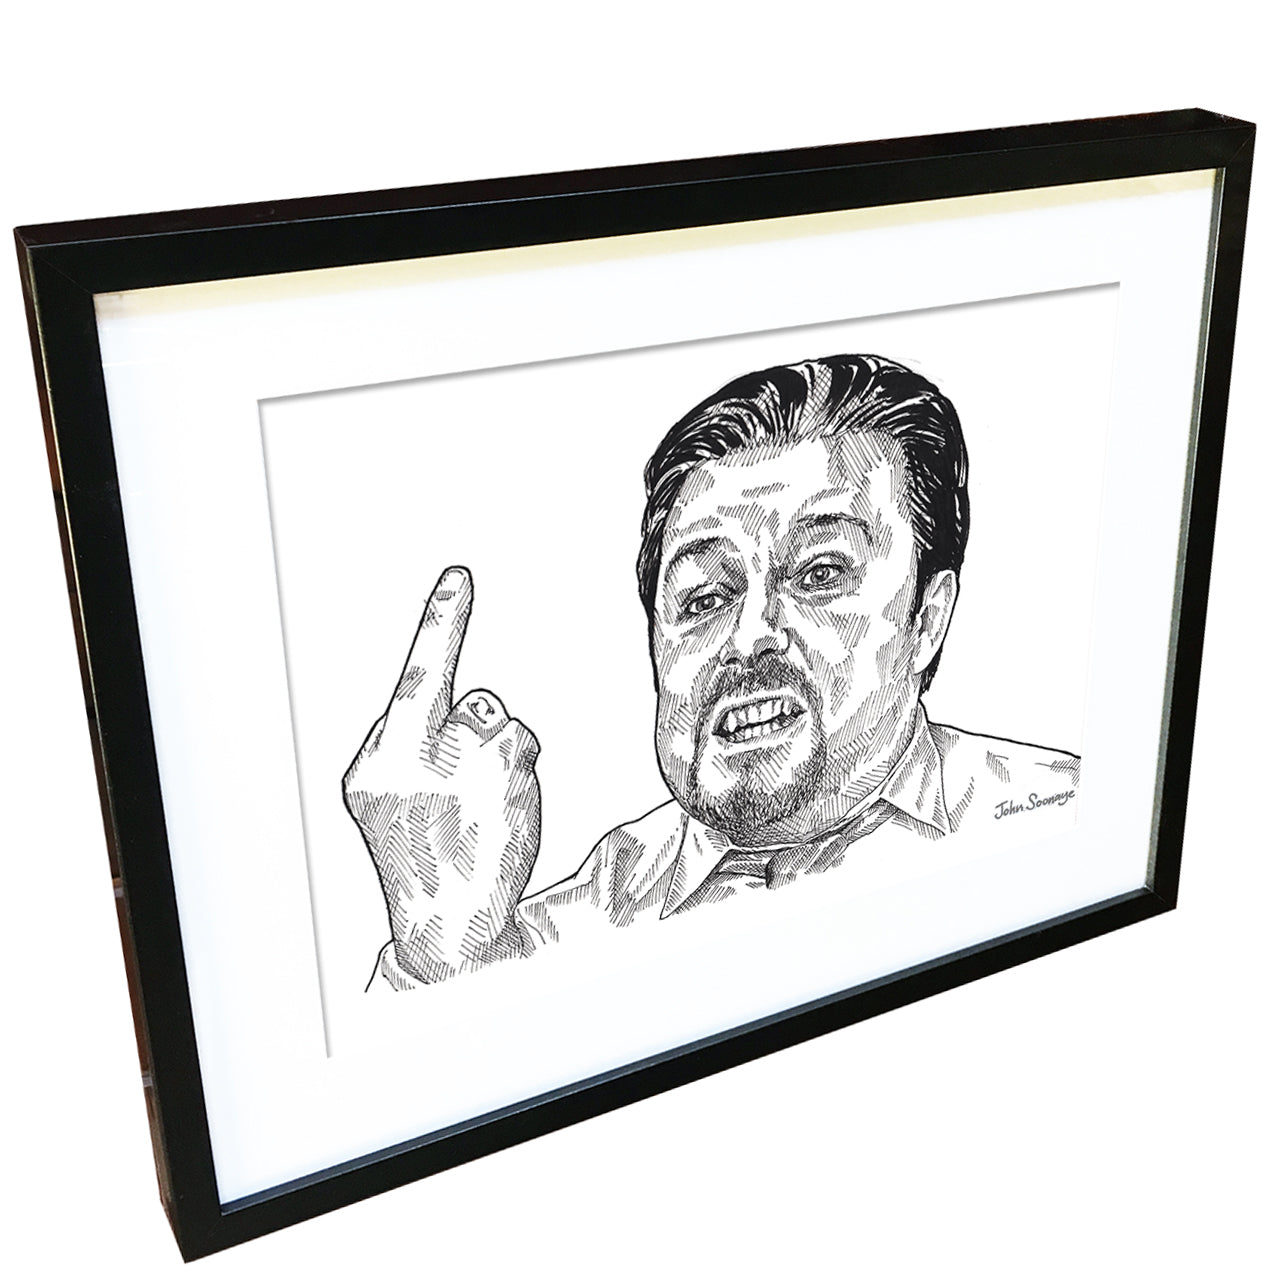 David Brent by John Soonaye - signed fine art print - Egoiste Gallery